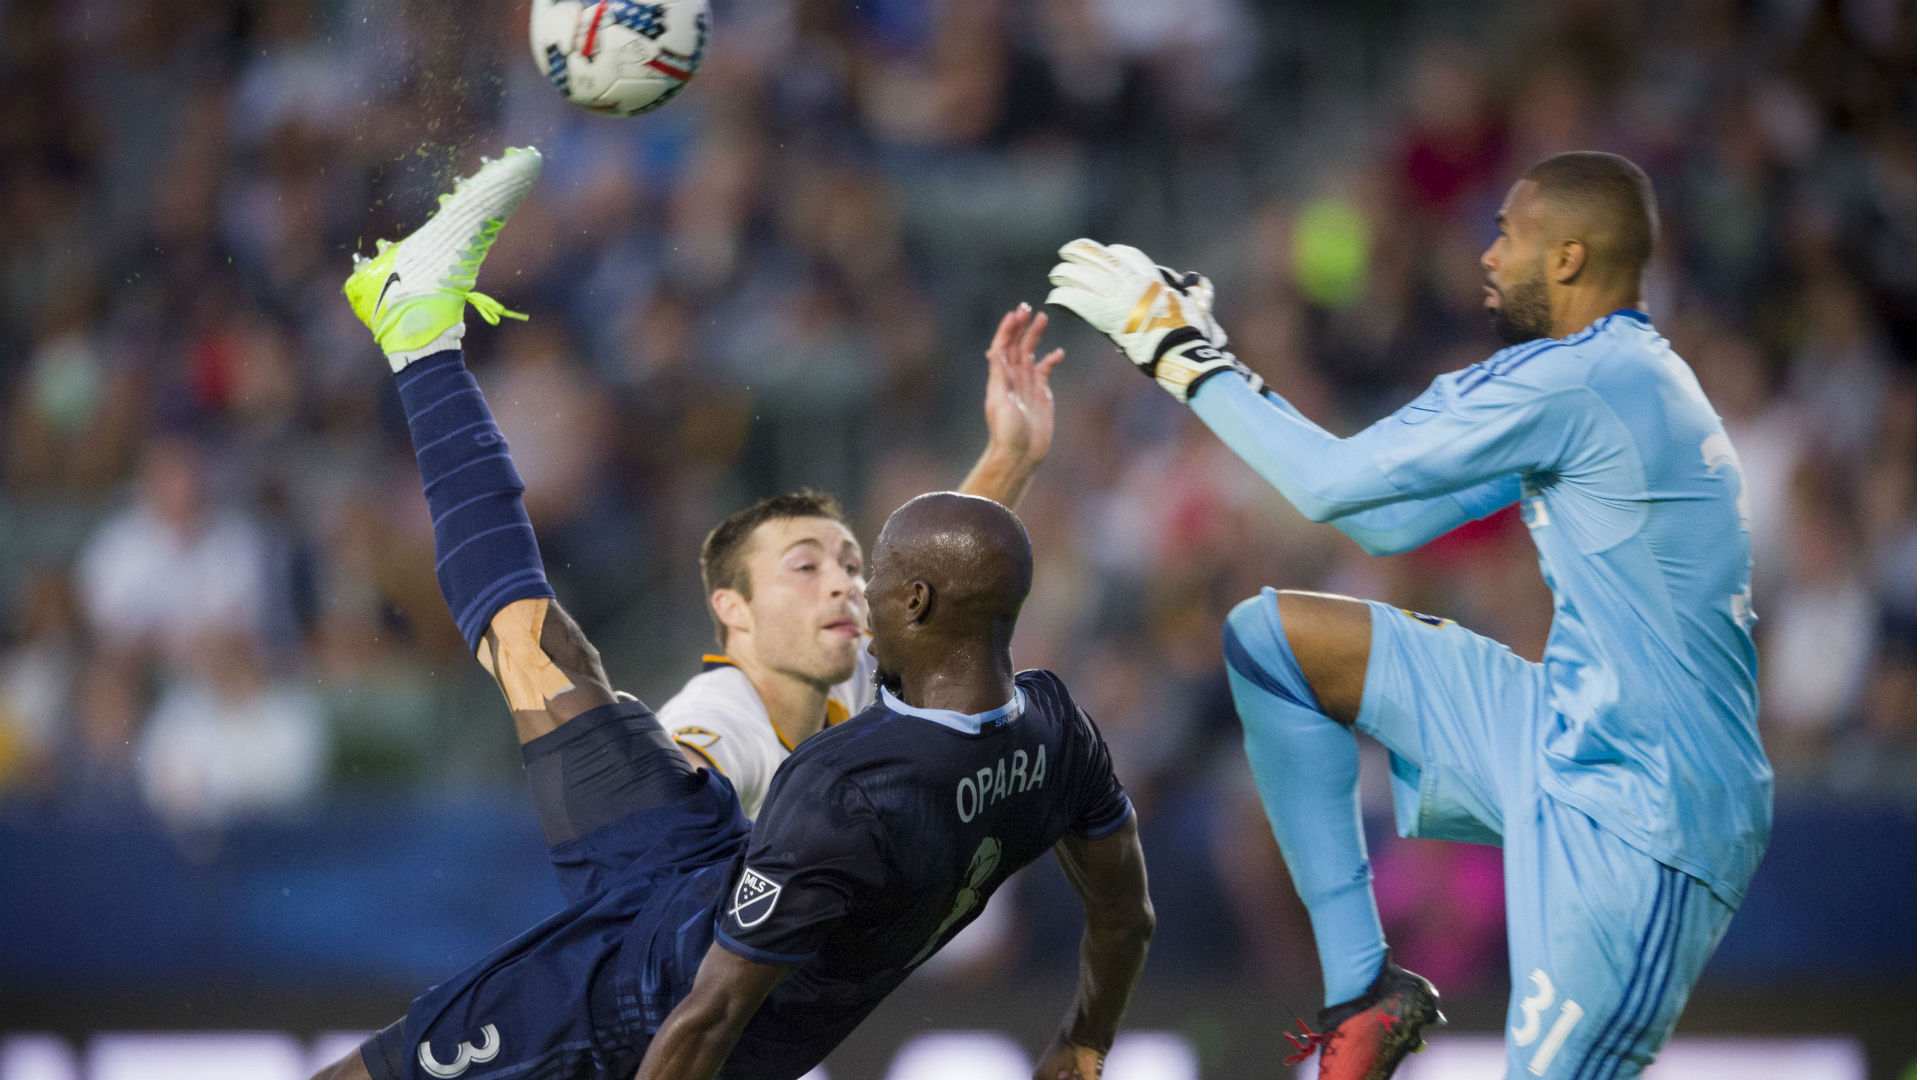 Ike Opara Sporting Kansas City LA Galaxy MLS